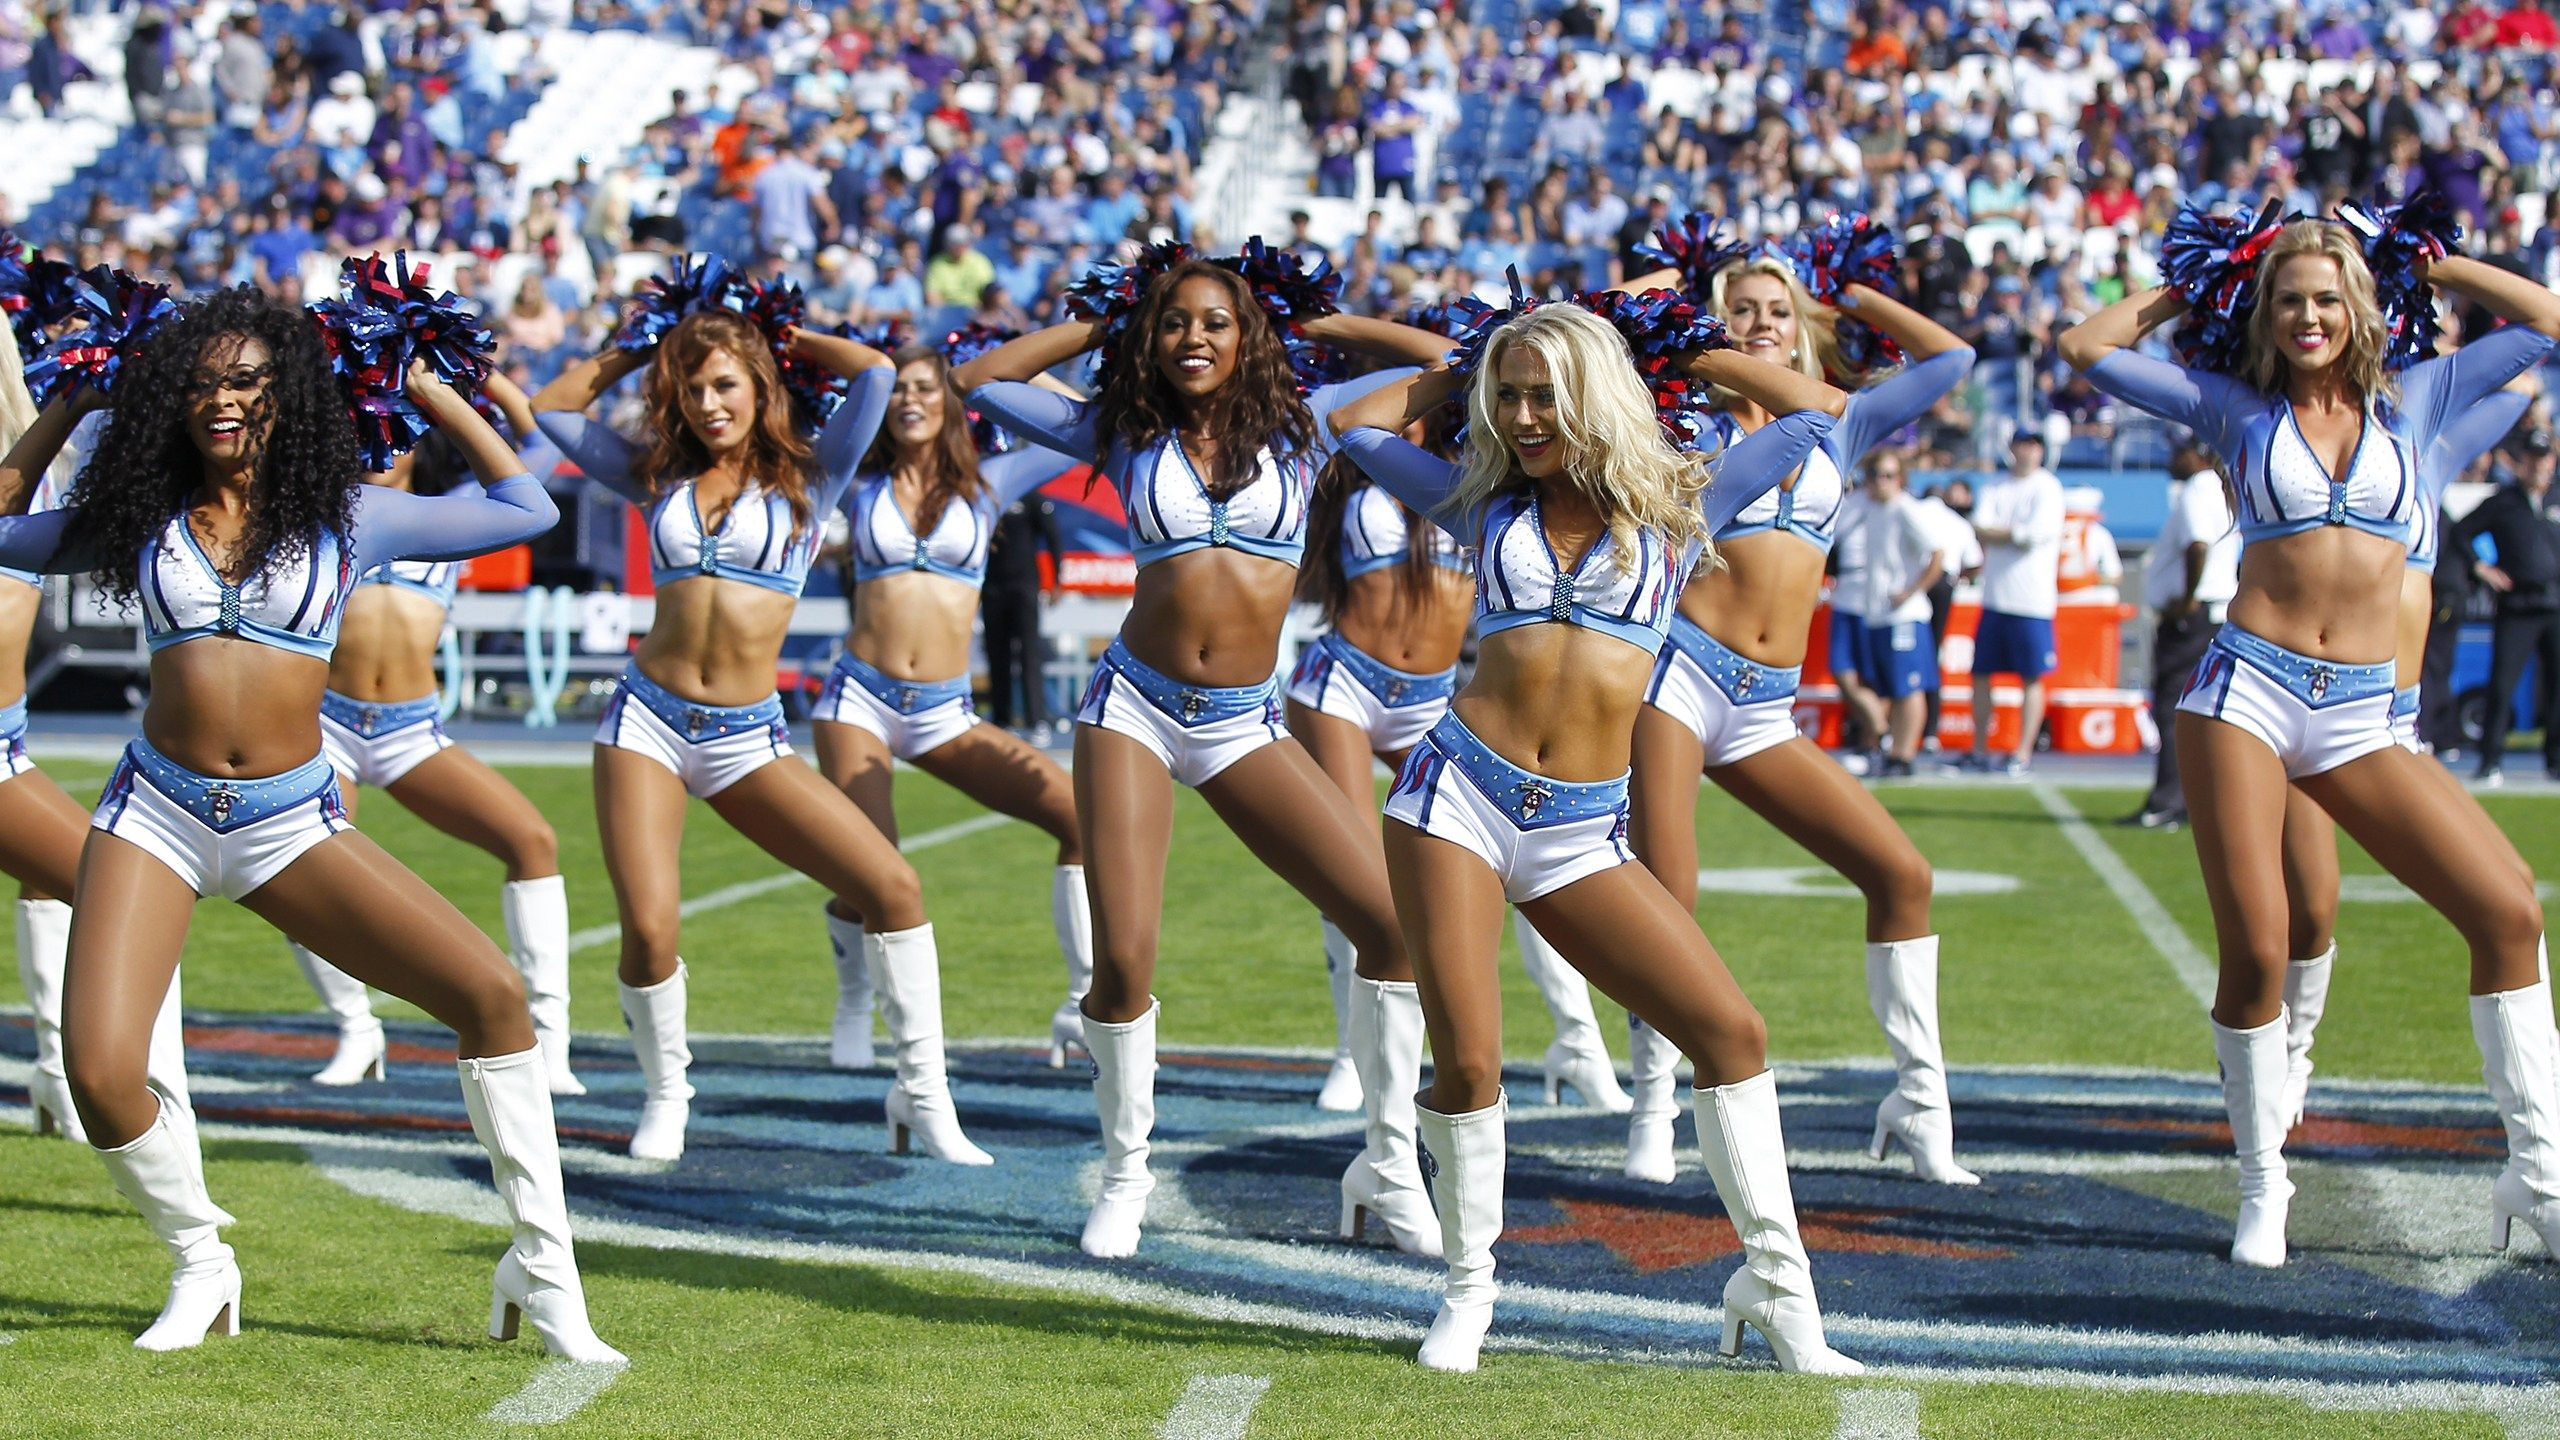 Showing Xxx Images For Nude Nfl Cheerleaders Xxx